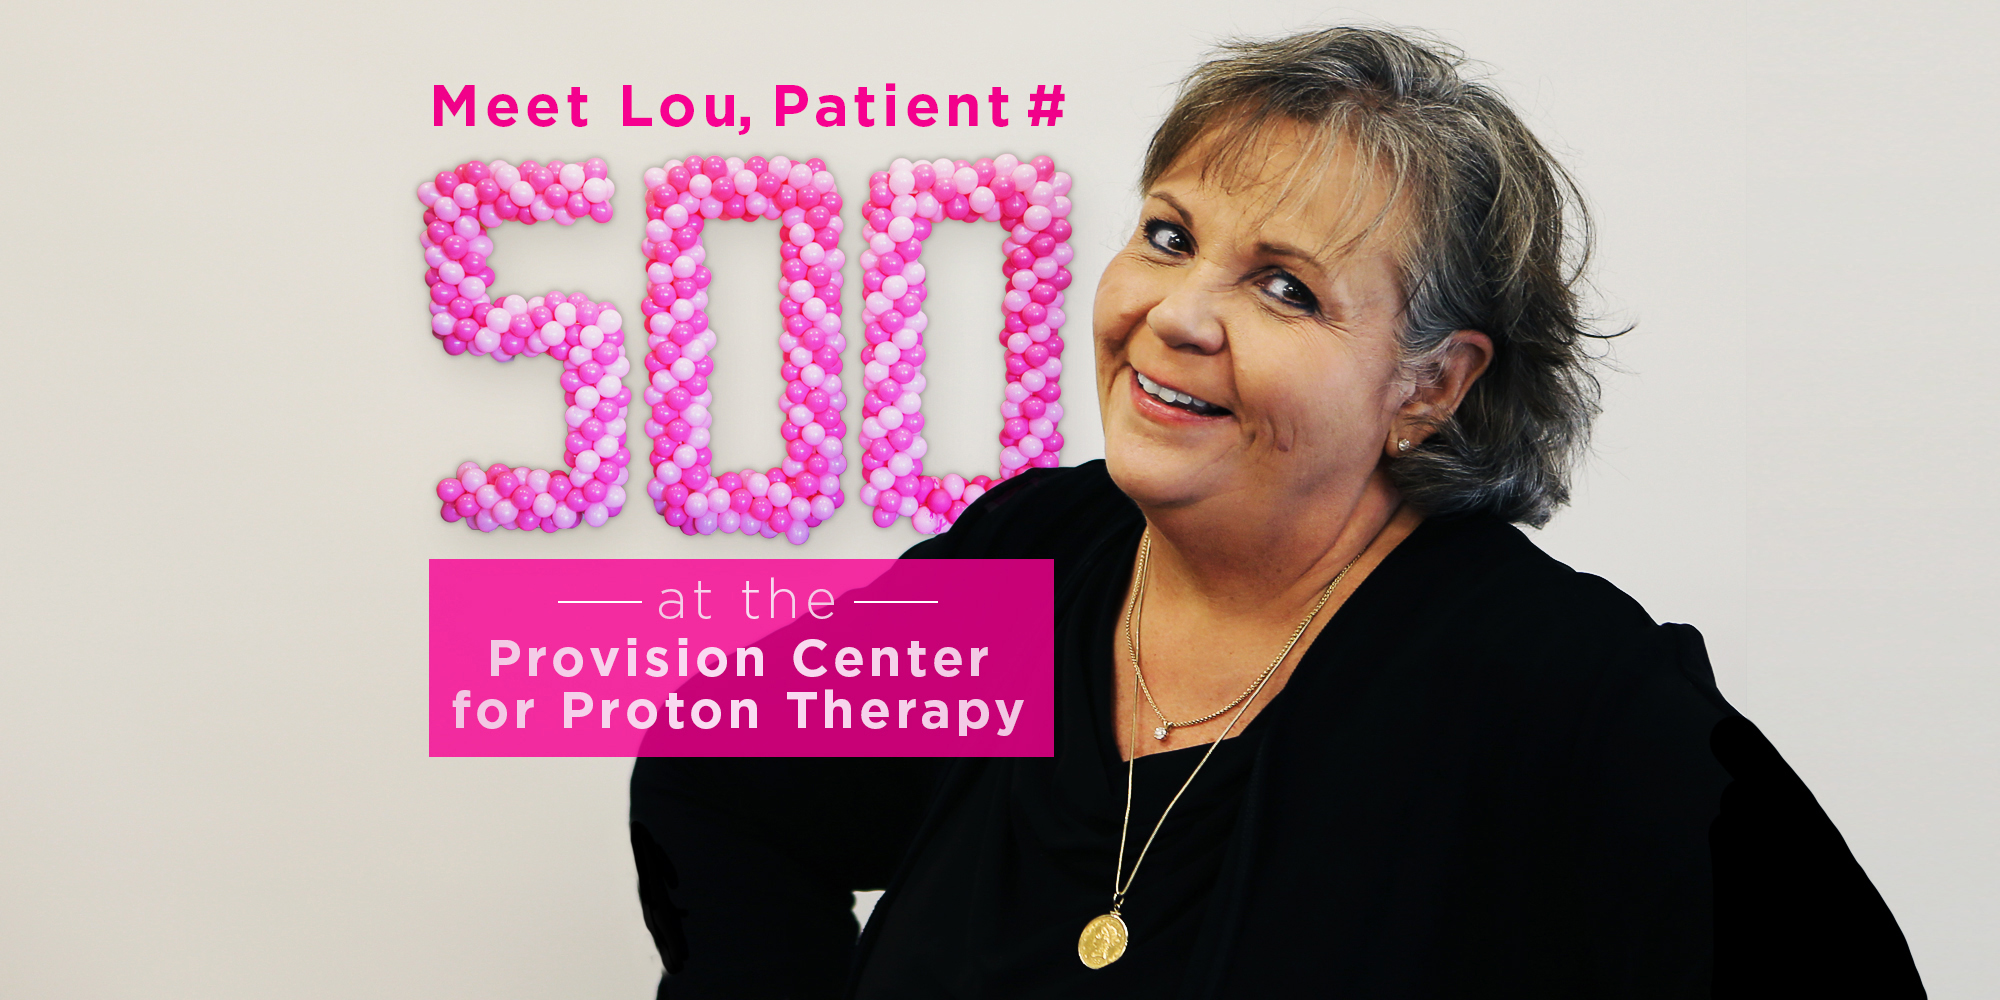 Lou-500th Patient